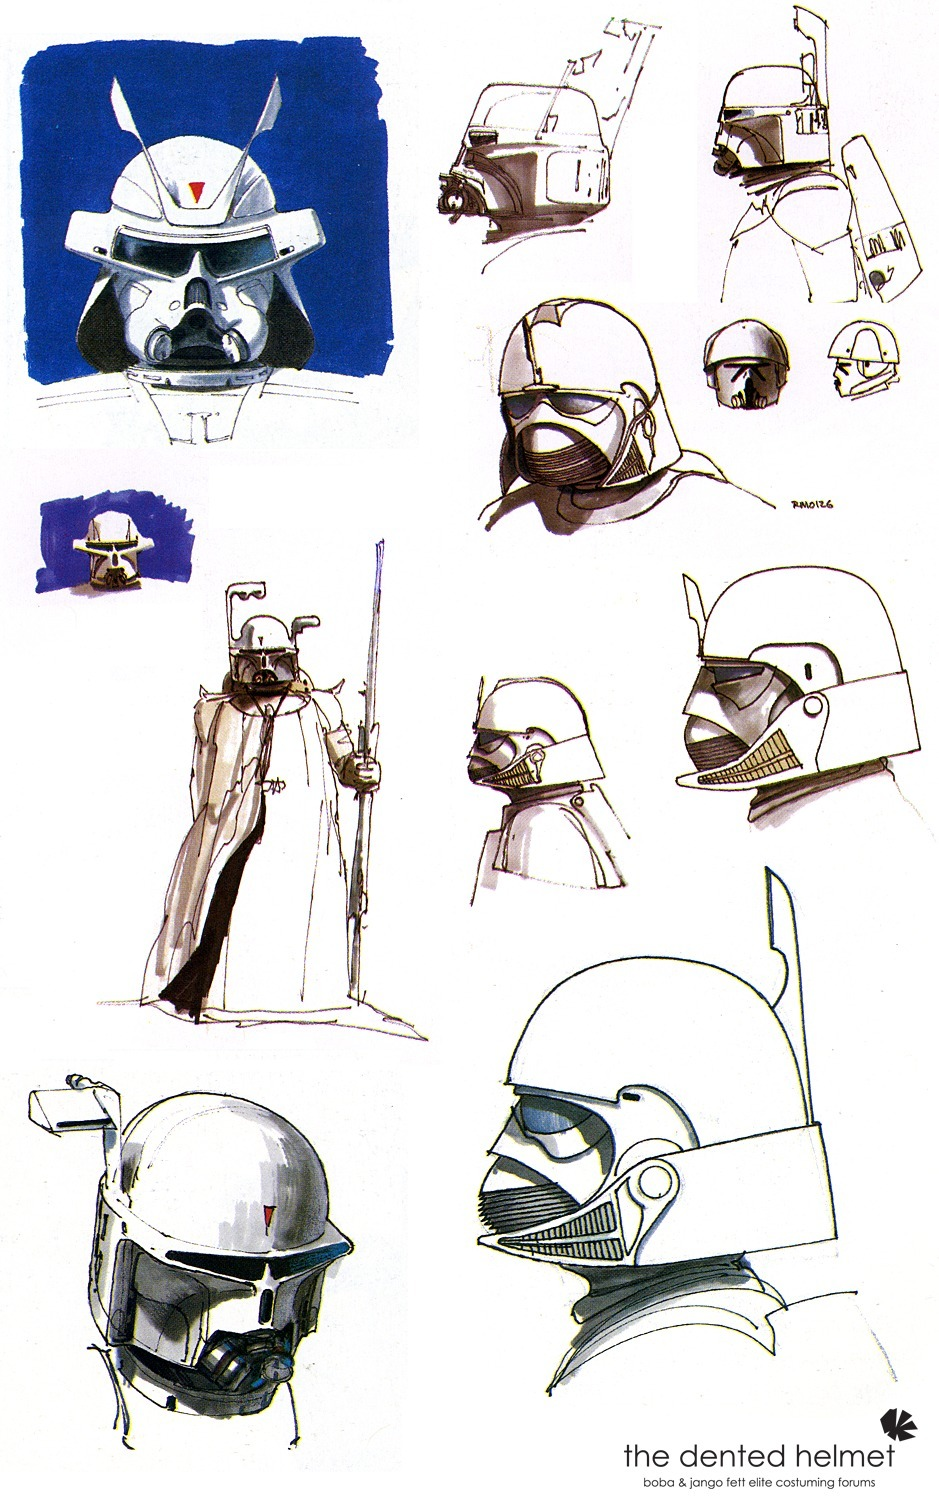 Early Darth Vader sketches by Ralph McQuarrie that were later used as inspiration for Boba Fett's design.